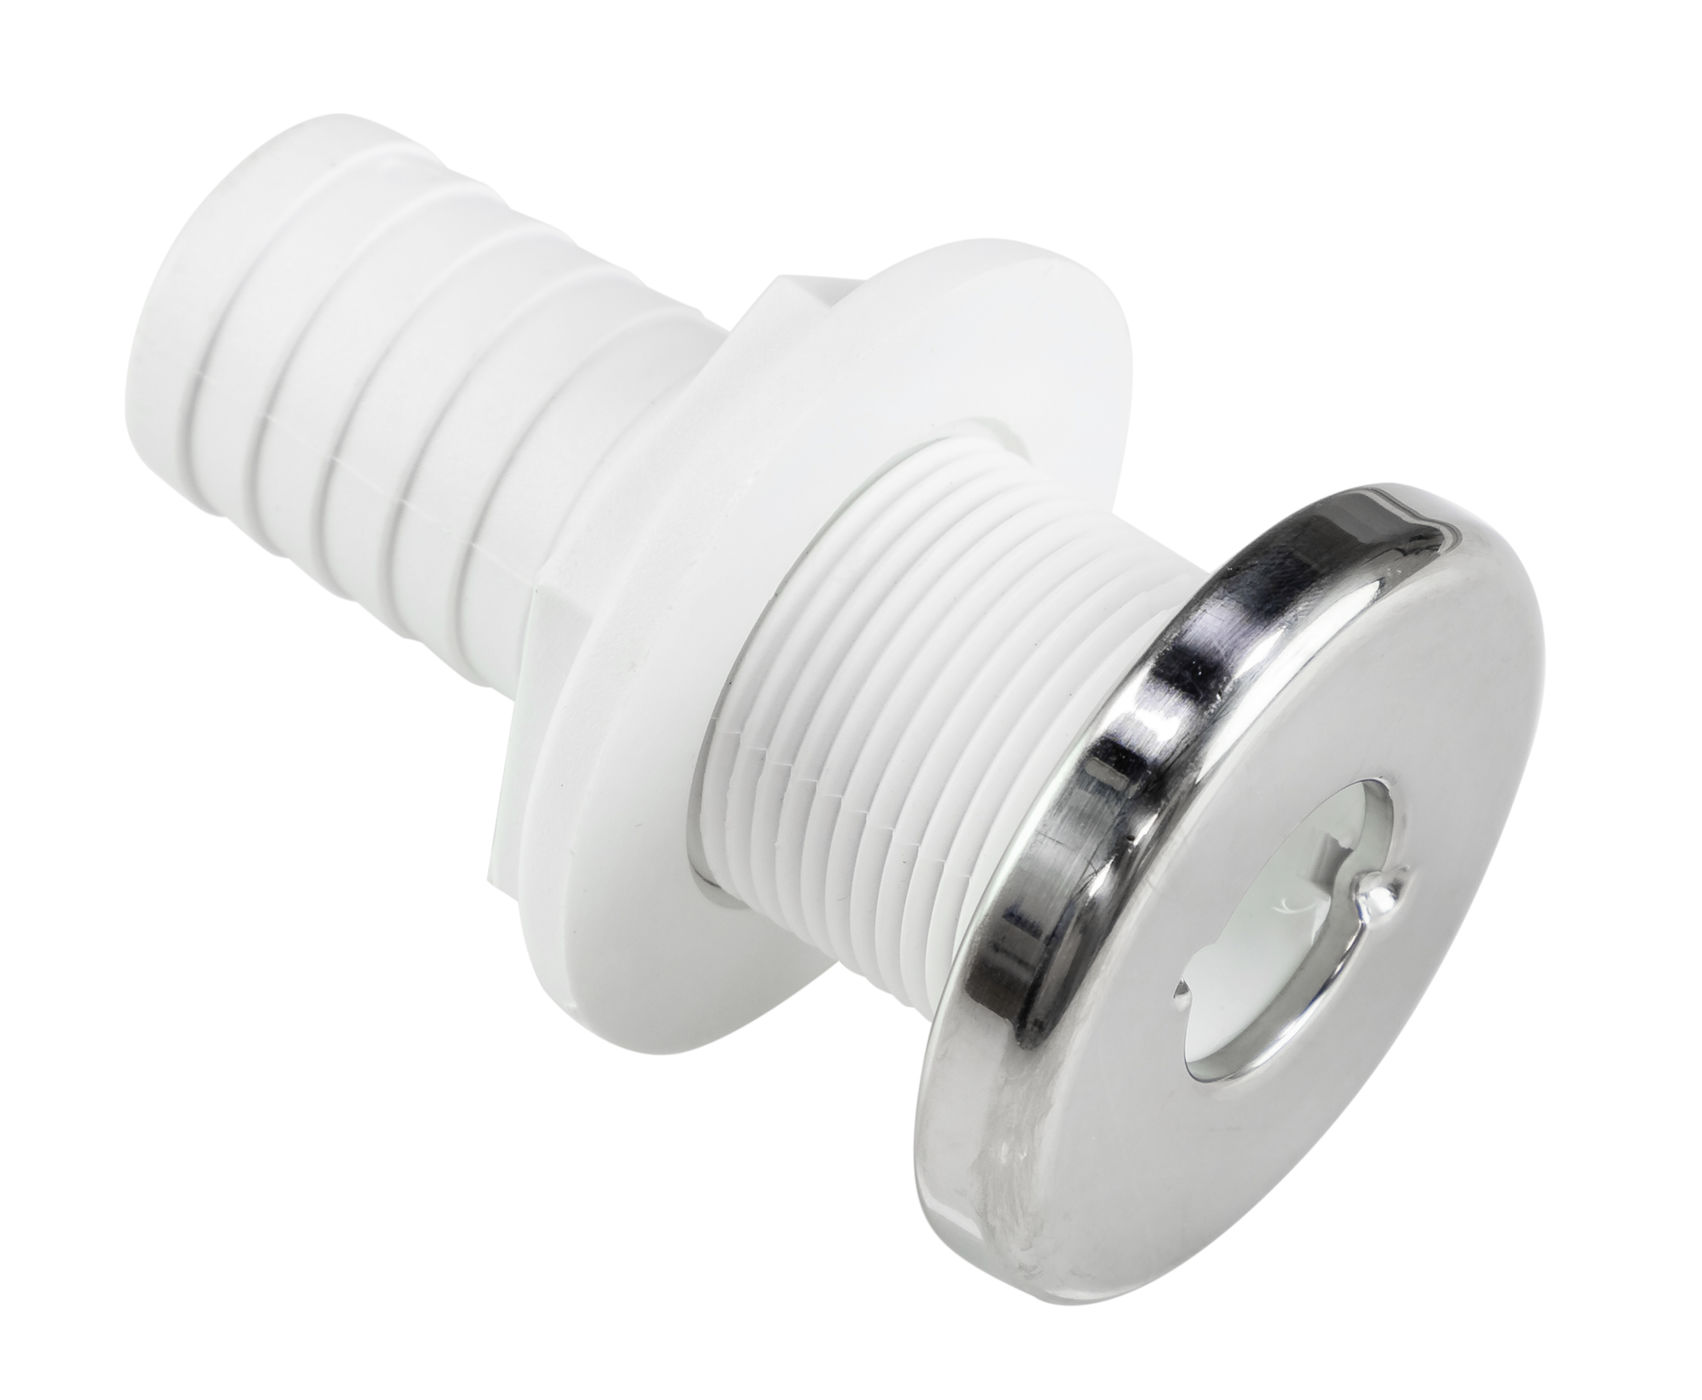 Connector Spillway Plastic With Lid Stainless Steel Hose 29mm 2560429400